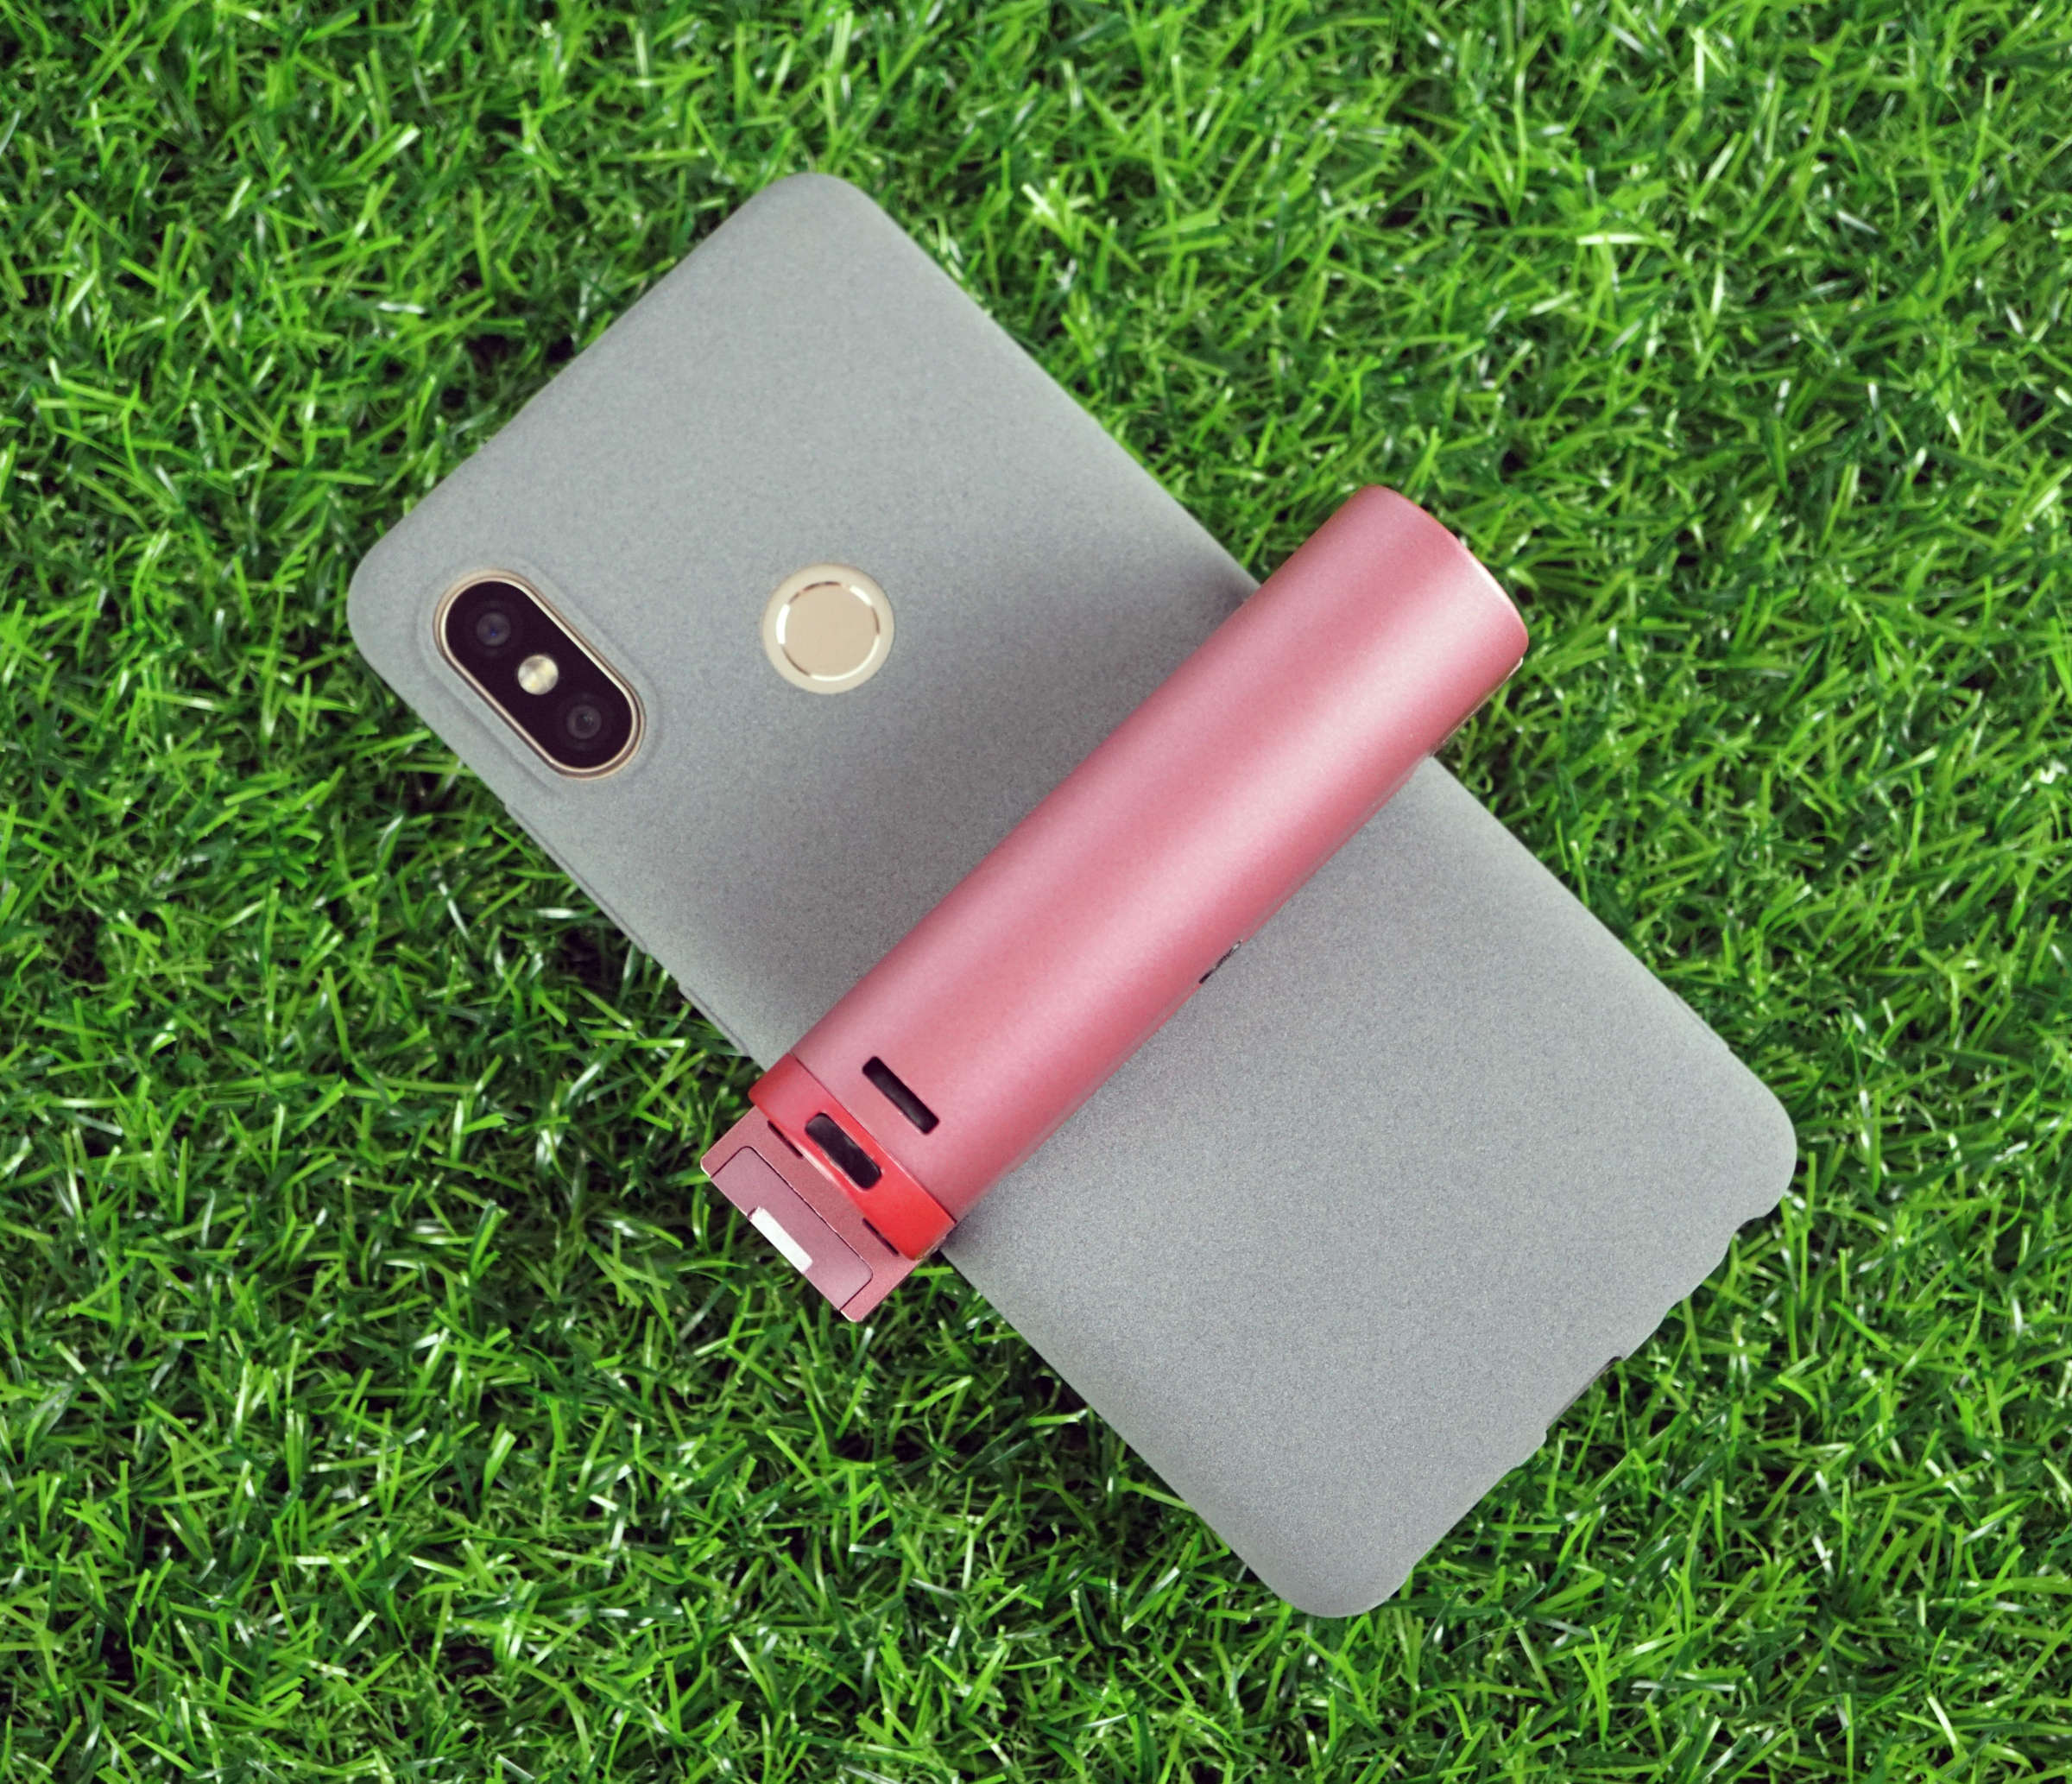 Product design, Product, Design, Mobile Phones, iPhone, grass, grass, mobile phone, technology, gadget, product